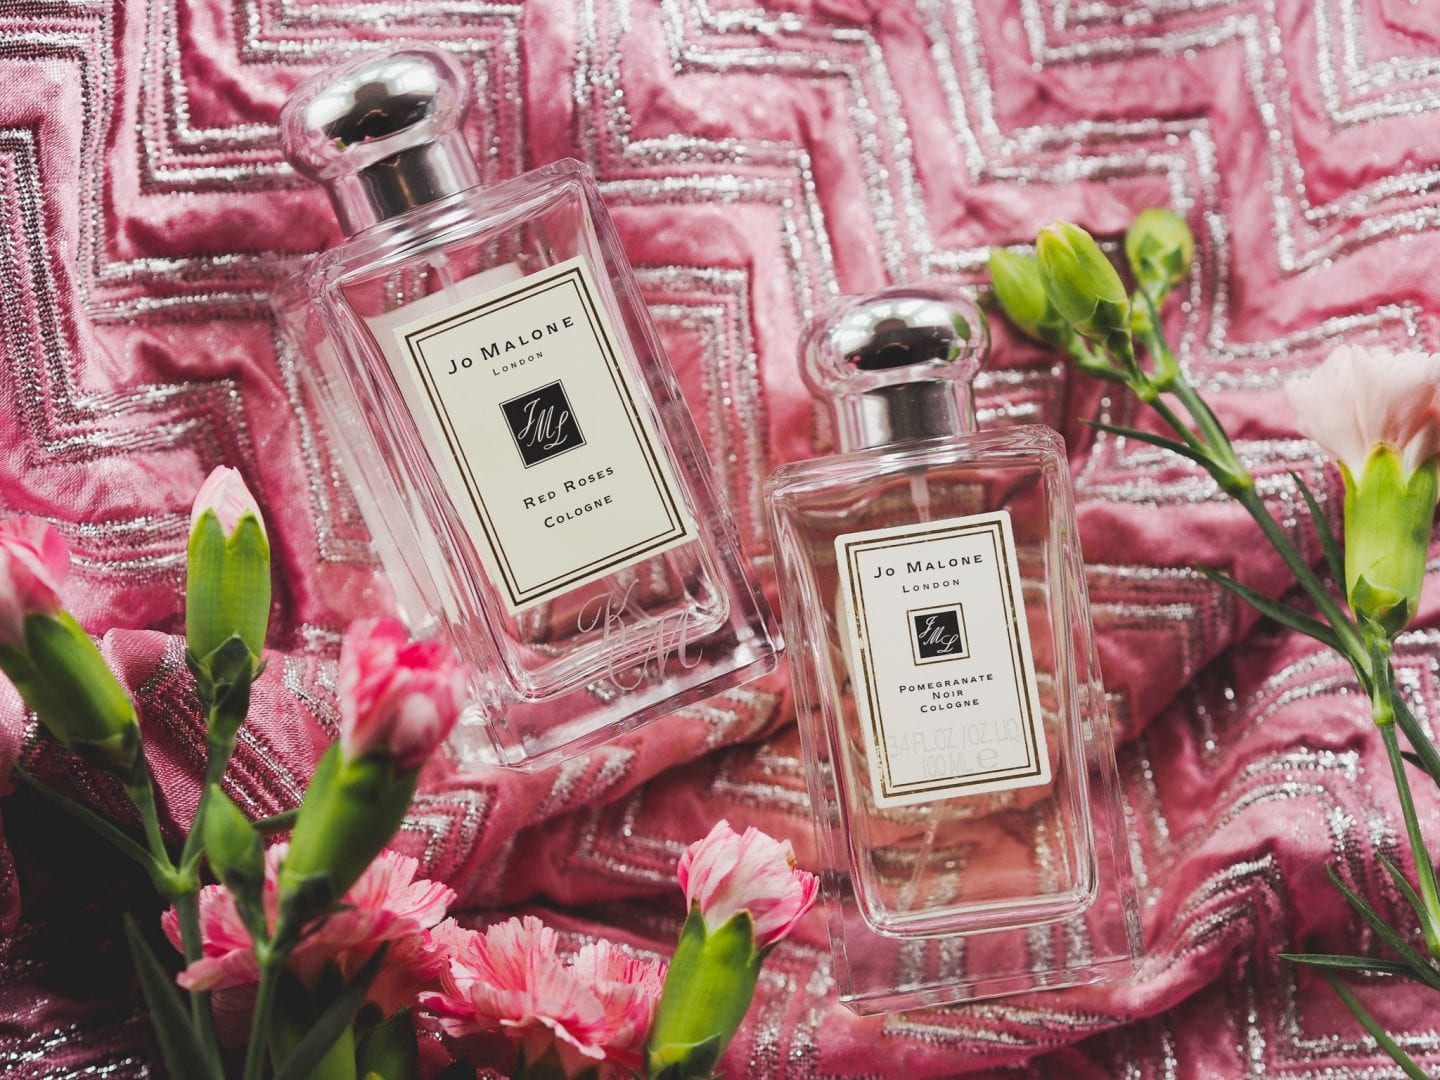 jo-malone-perfume-cologne-how-to-layer